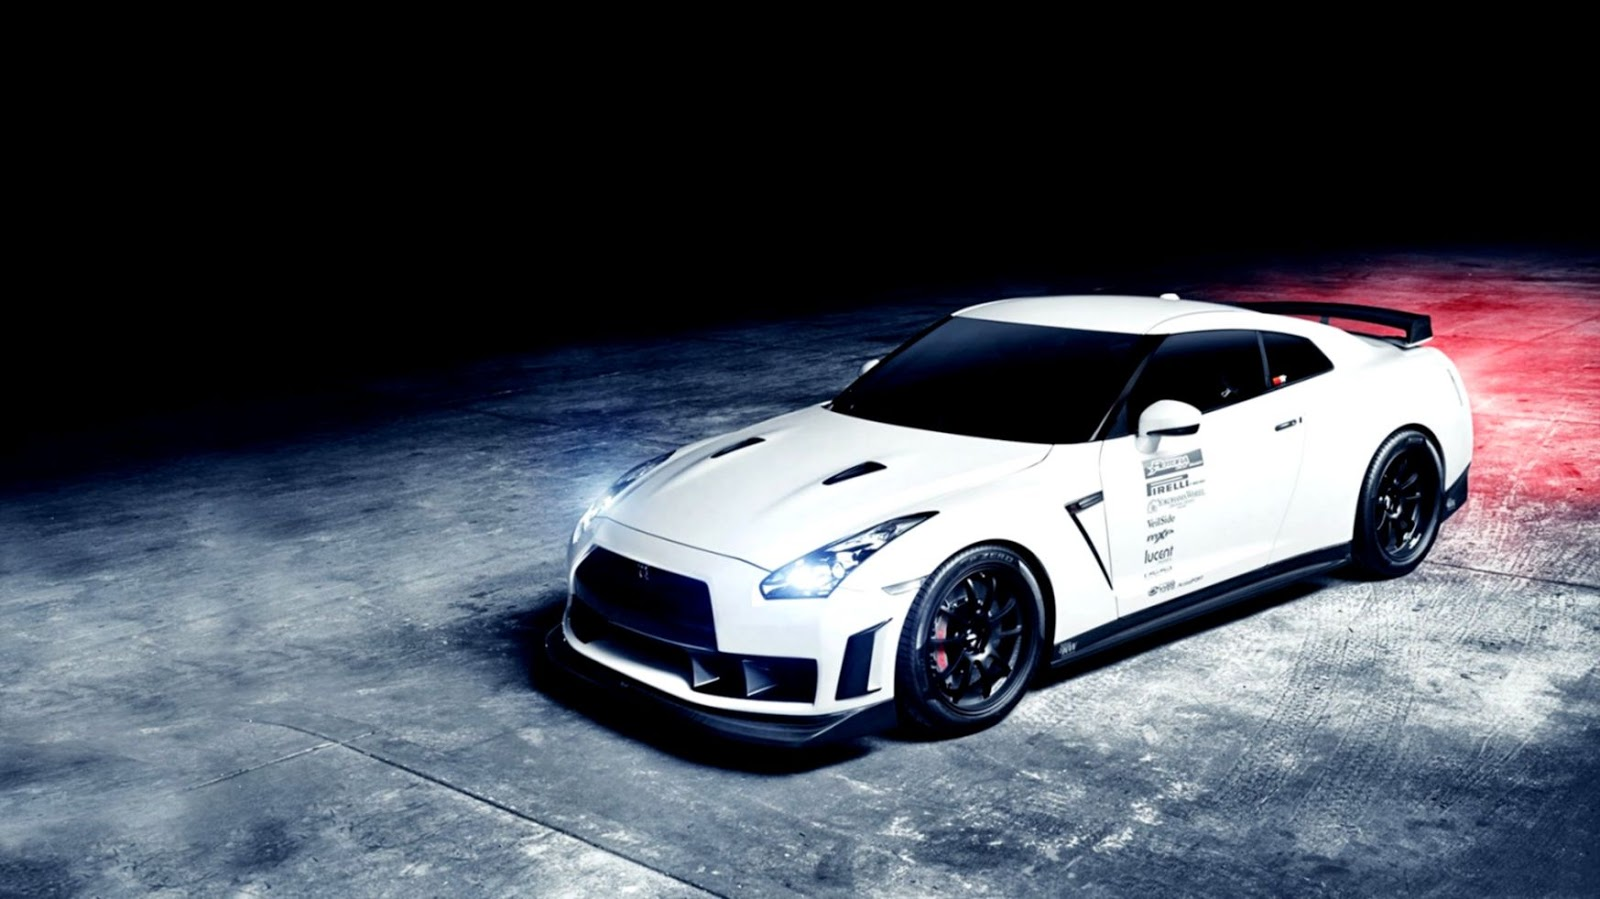 Nissan Gt R Blue Car Hd Wallpaper Views Wallpapers